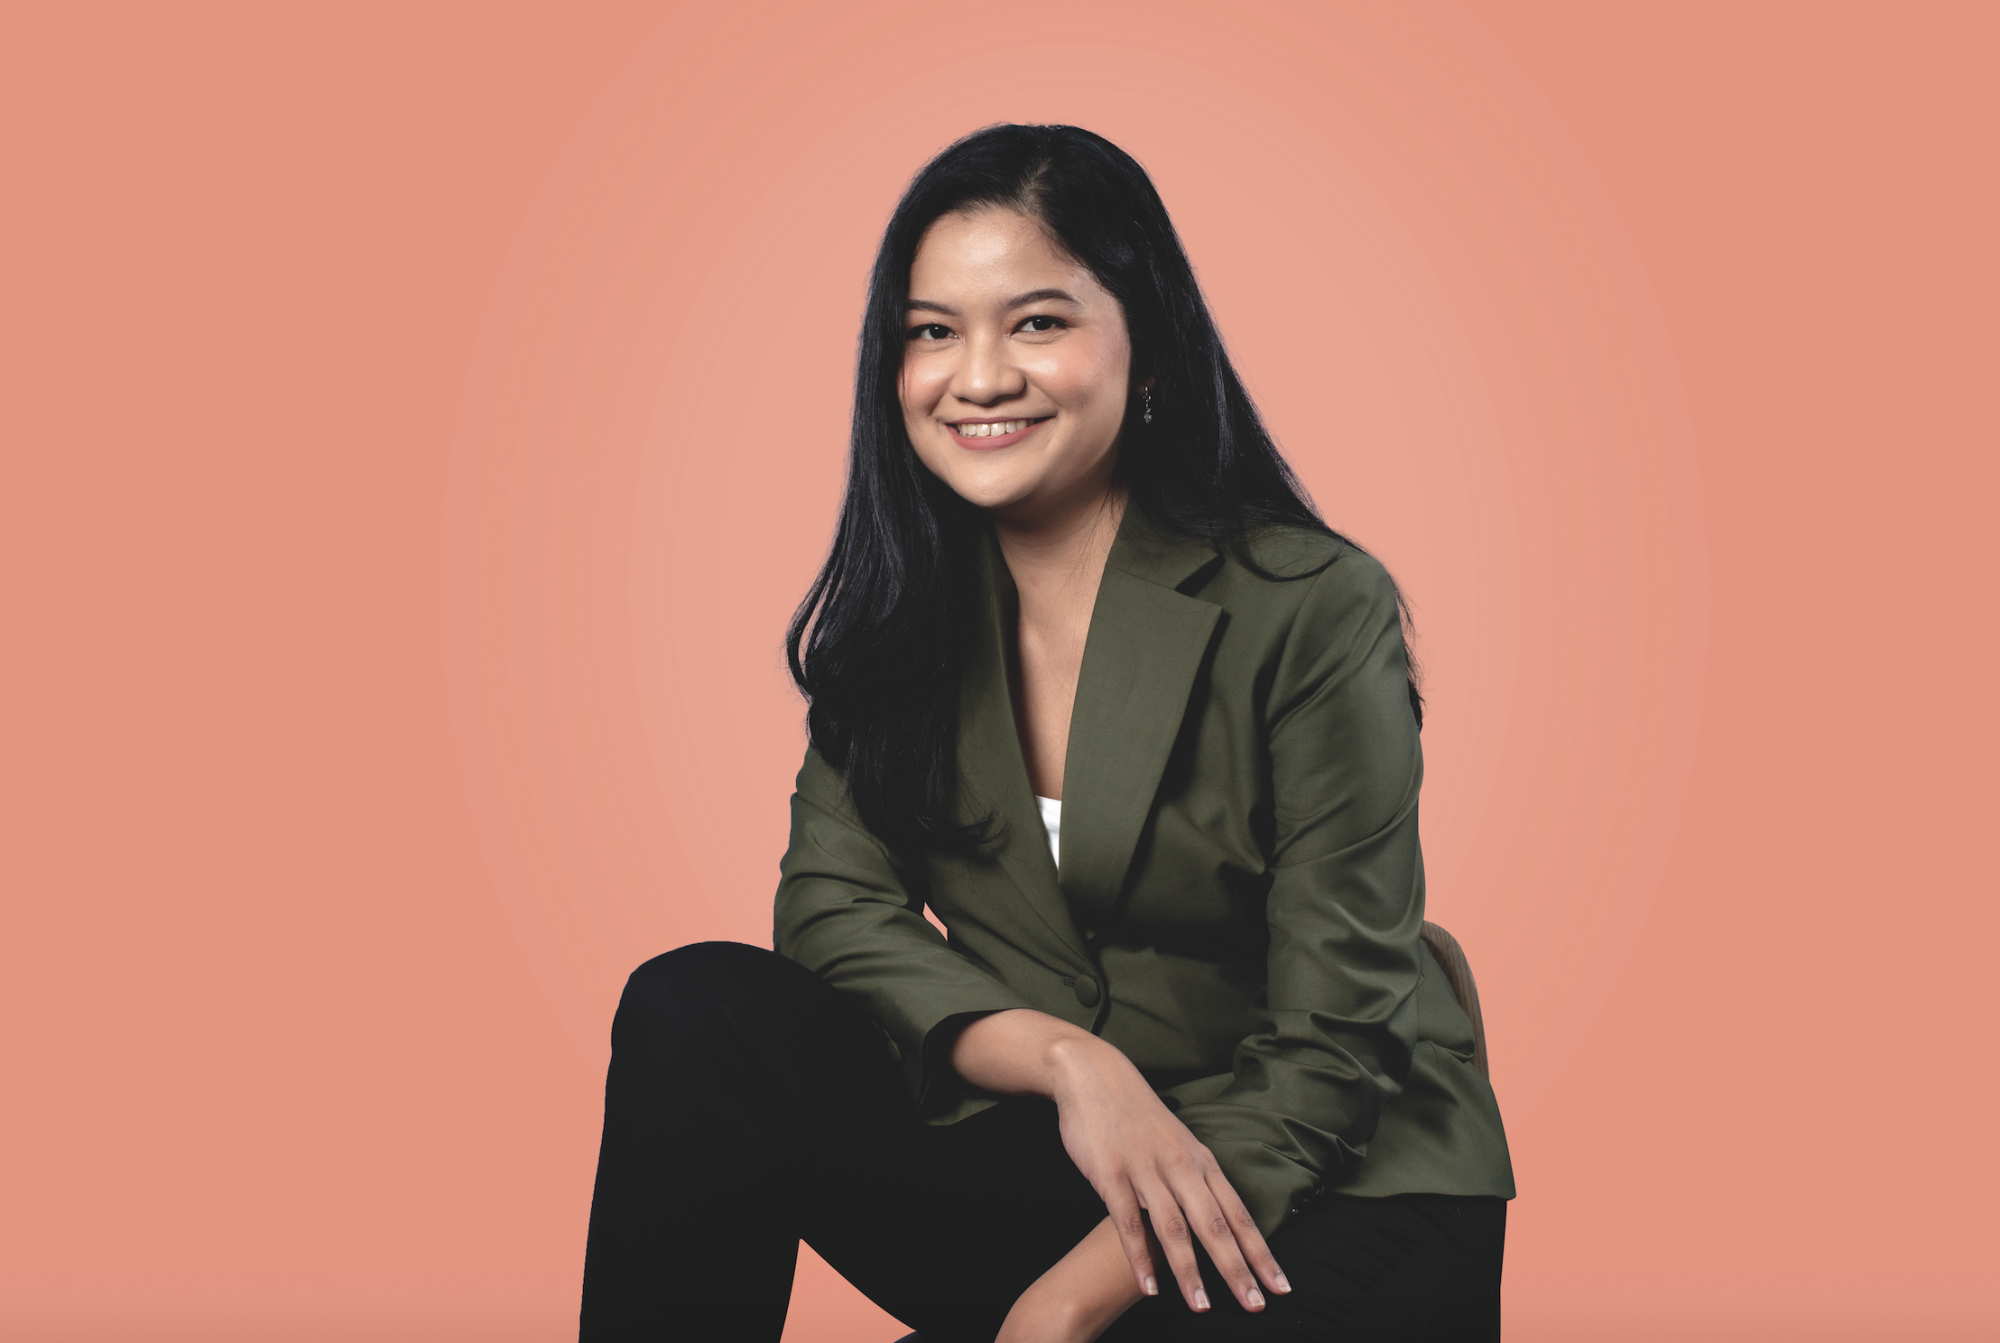 How This Indonesian Startup Pivoted Within Days To Produce Covid-19 Testing Kits